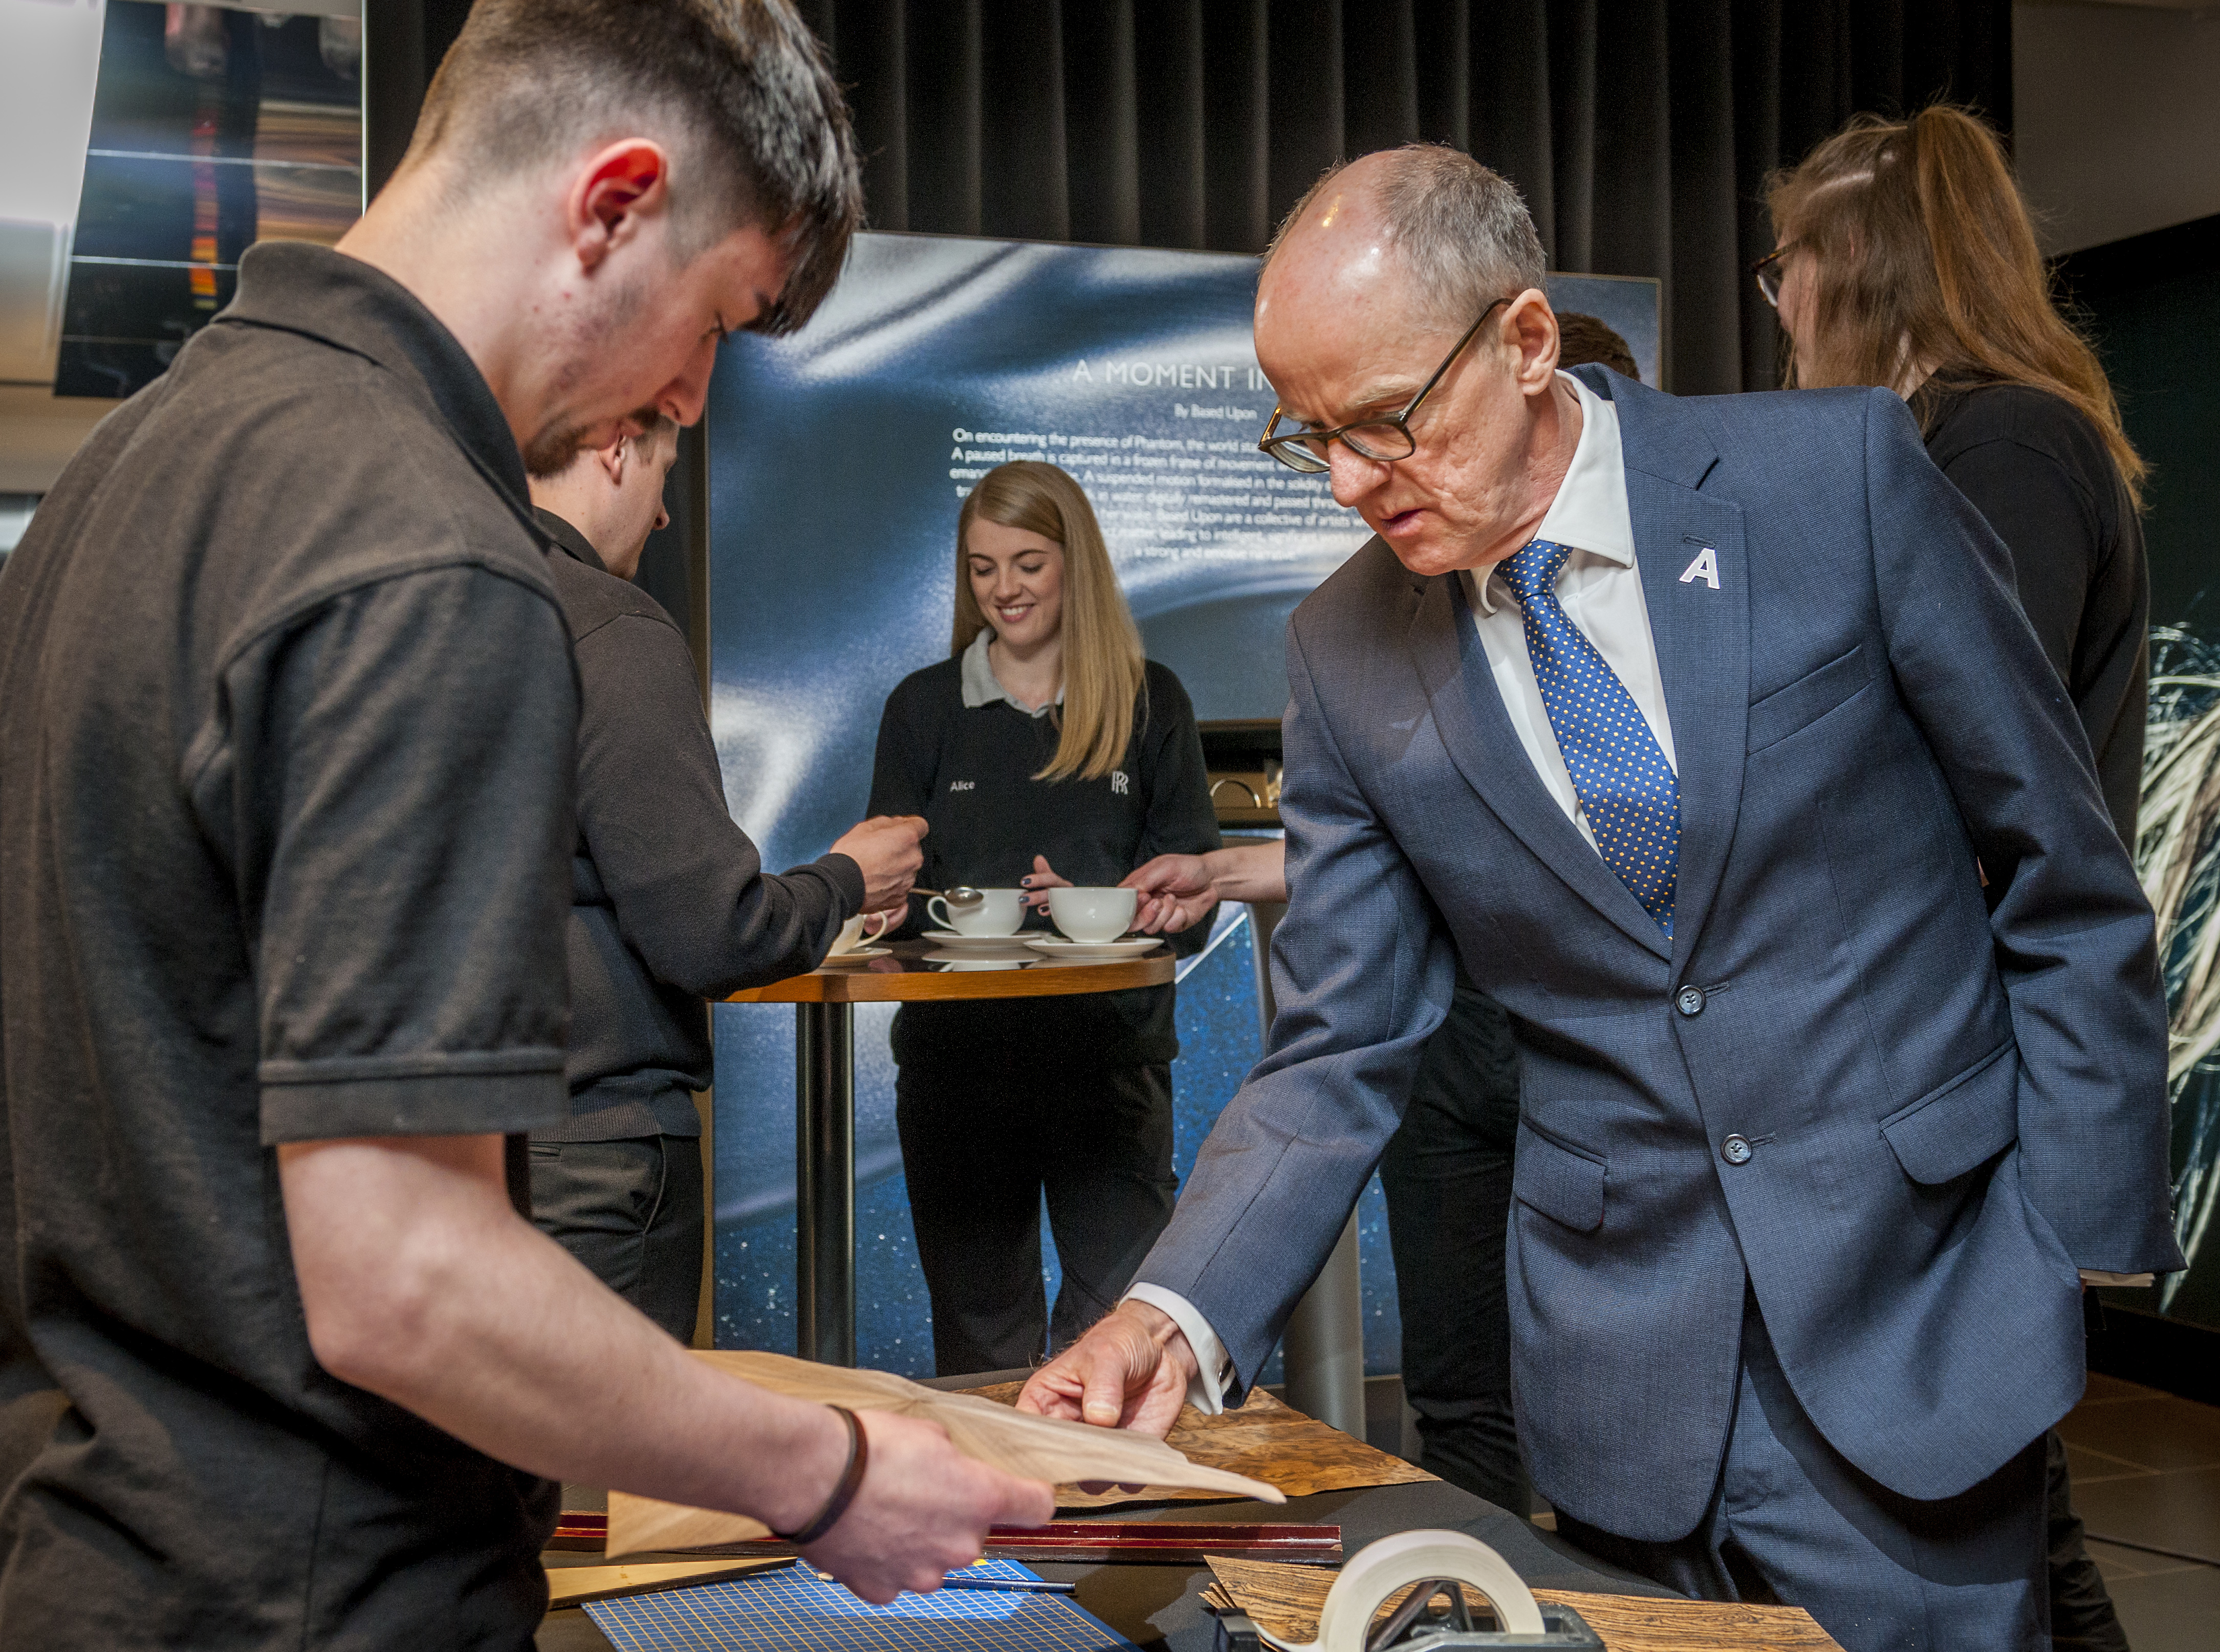 ROLLS-ROYCE WELCOMES MINISTER OF STATE DURING NATIONAL APPRENTICESHIP WEEK